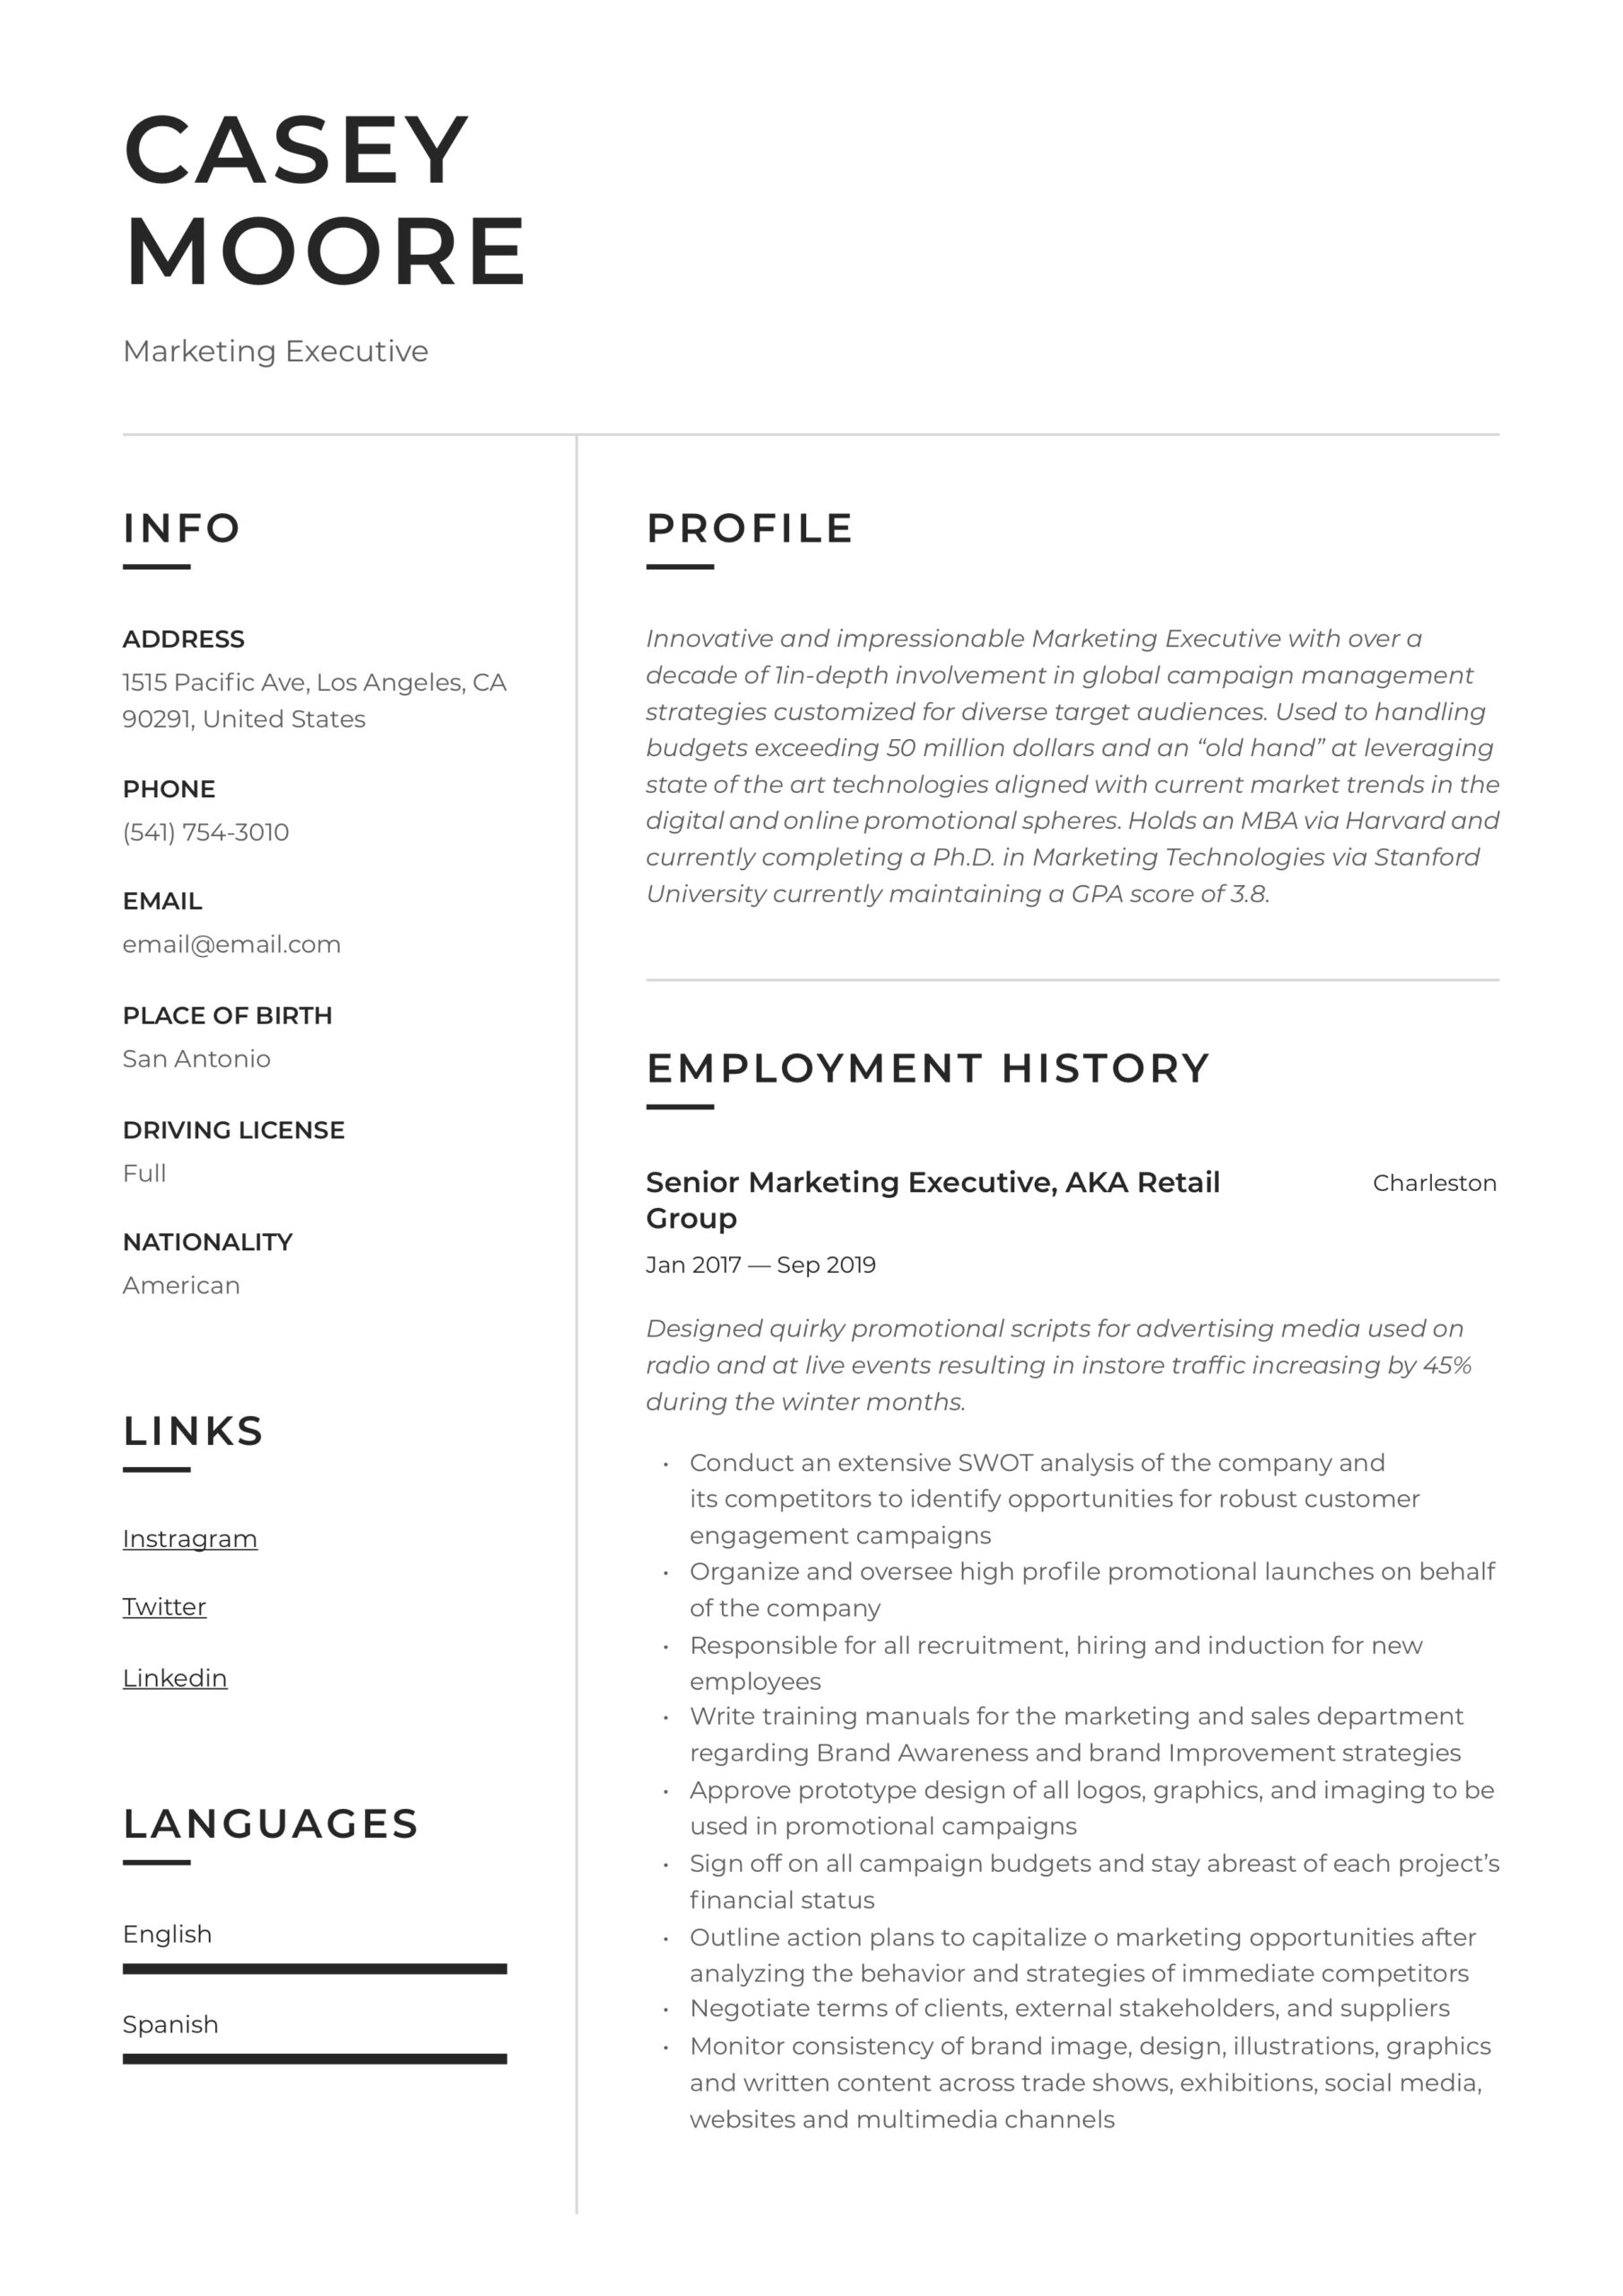 marketing executive resume writing guide examples stanford classic format sample builder Resume Marketing Executive Resume